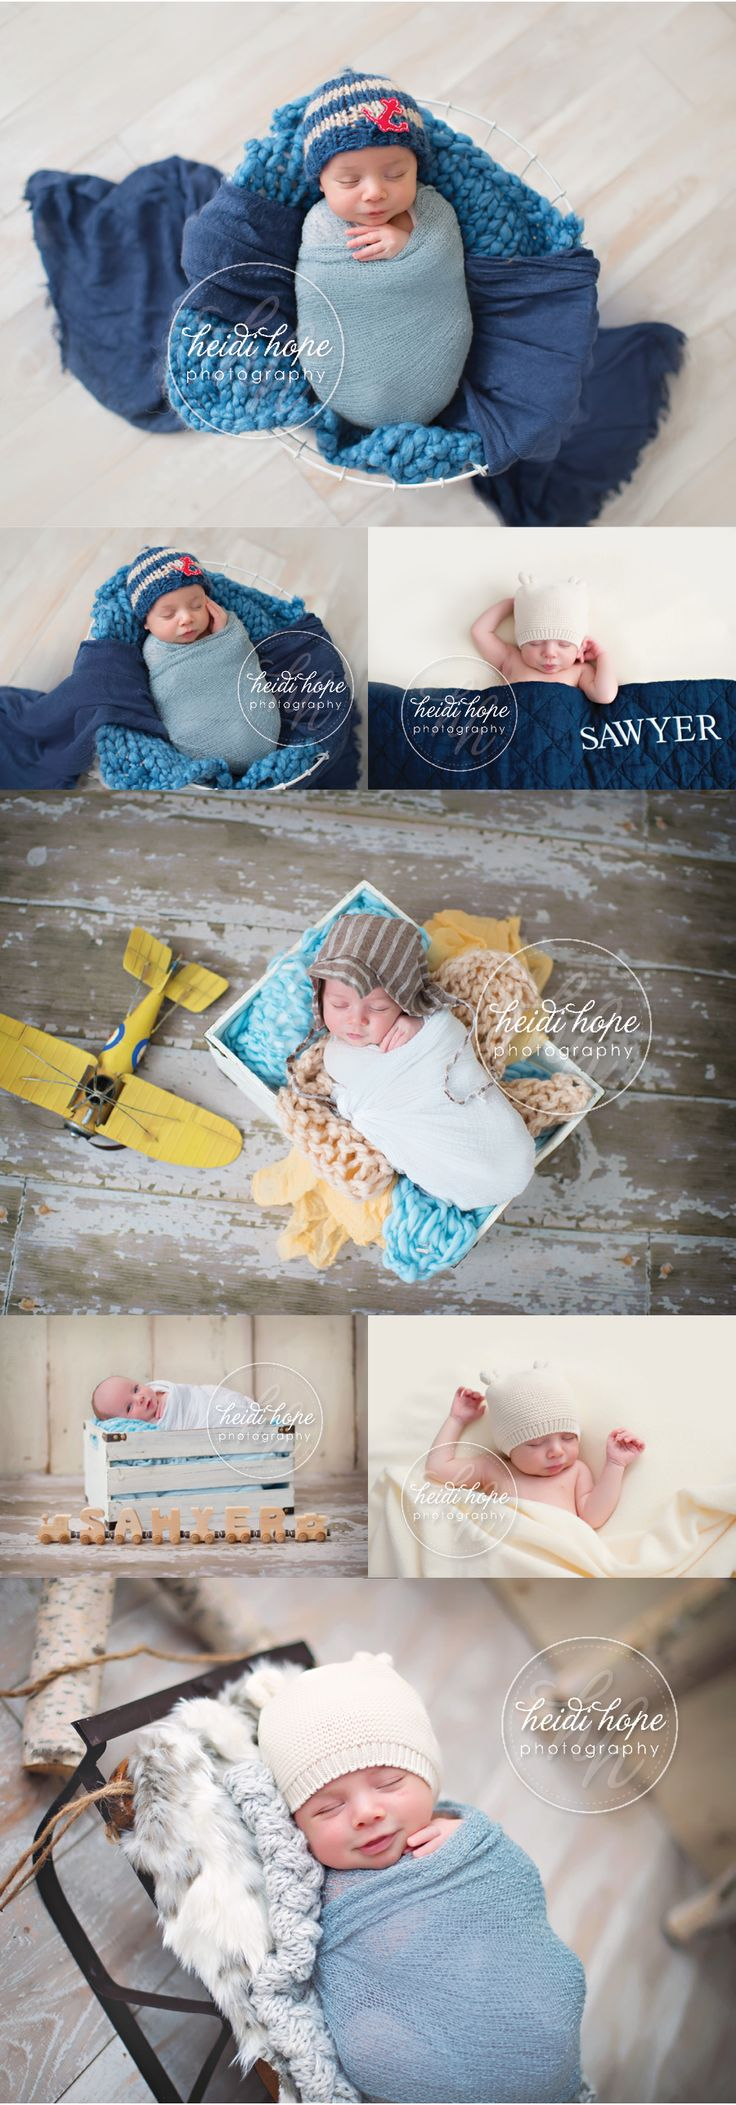 One Month Old Baby S, a classic little star newborn session.